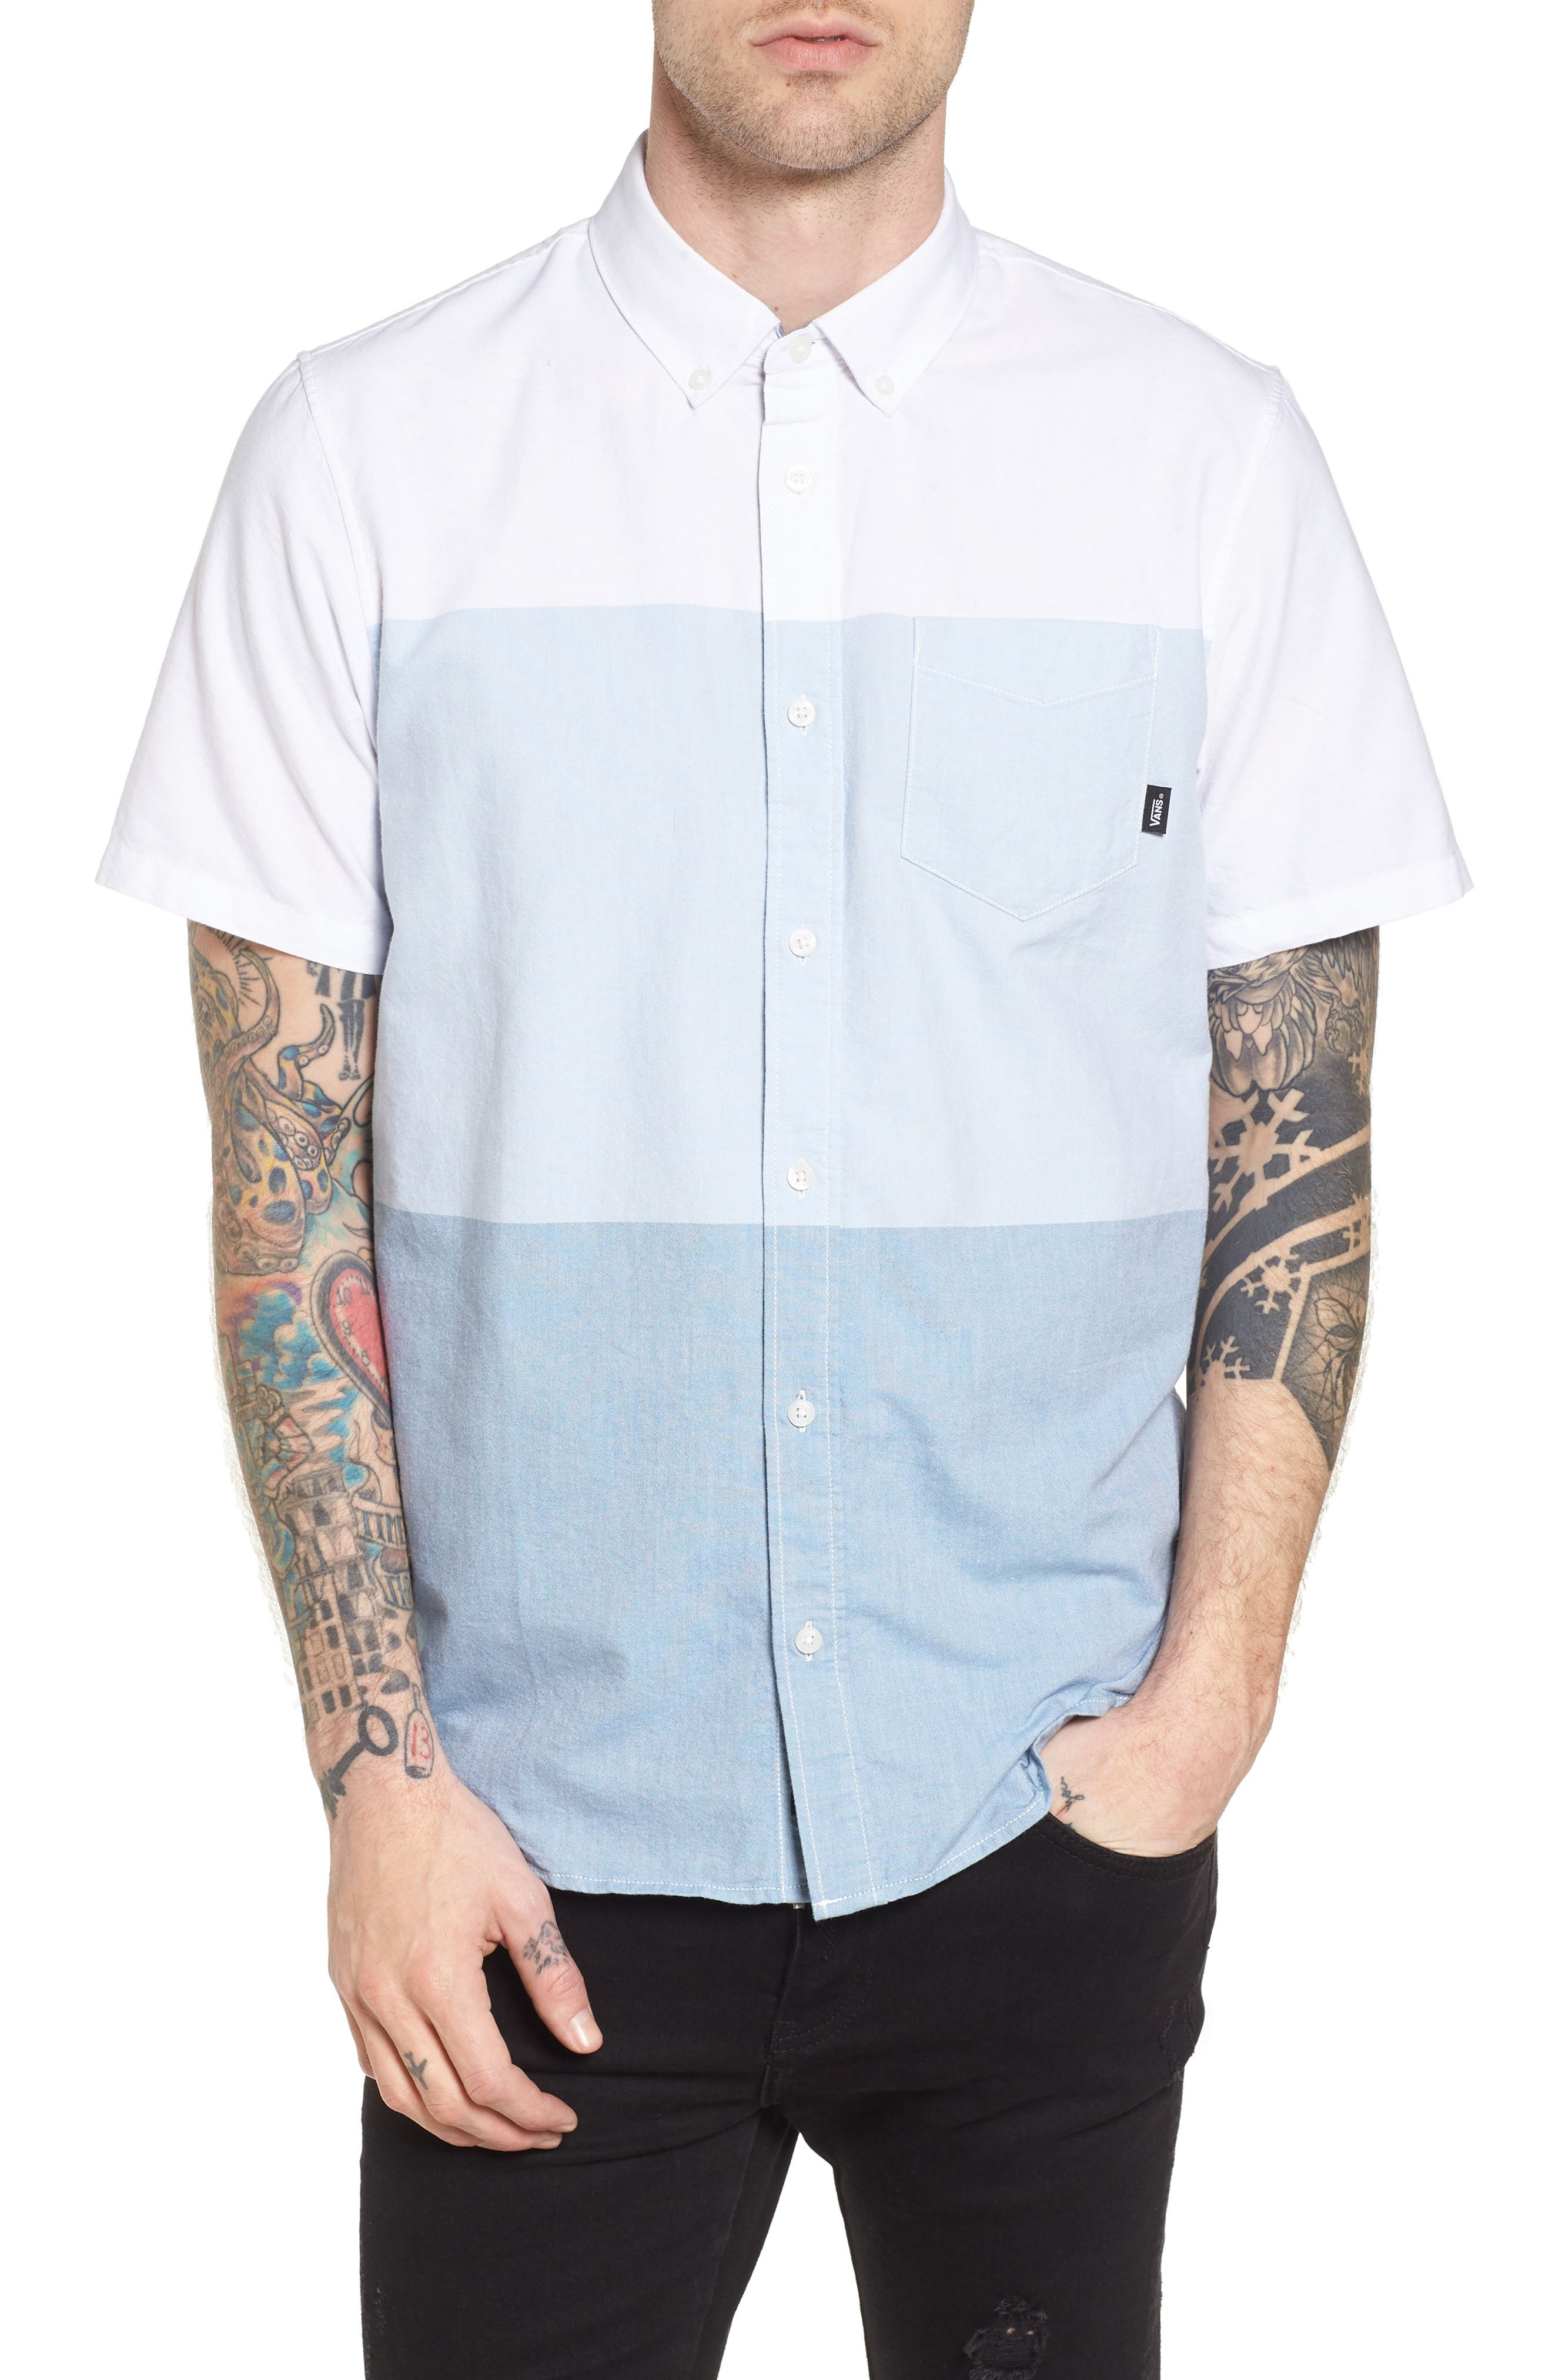 Houser Woven Shirt,                         Main,                         color, White/ Real Teal